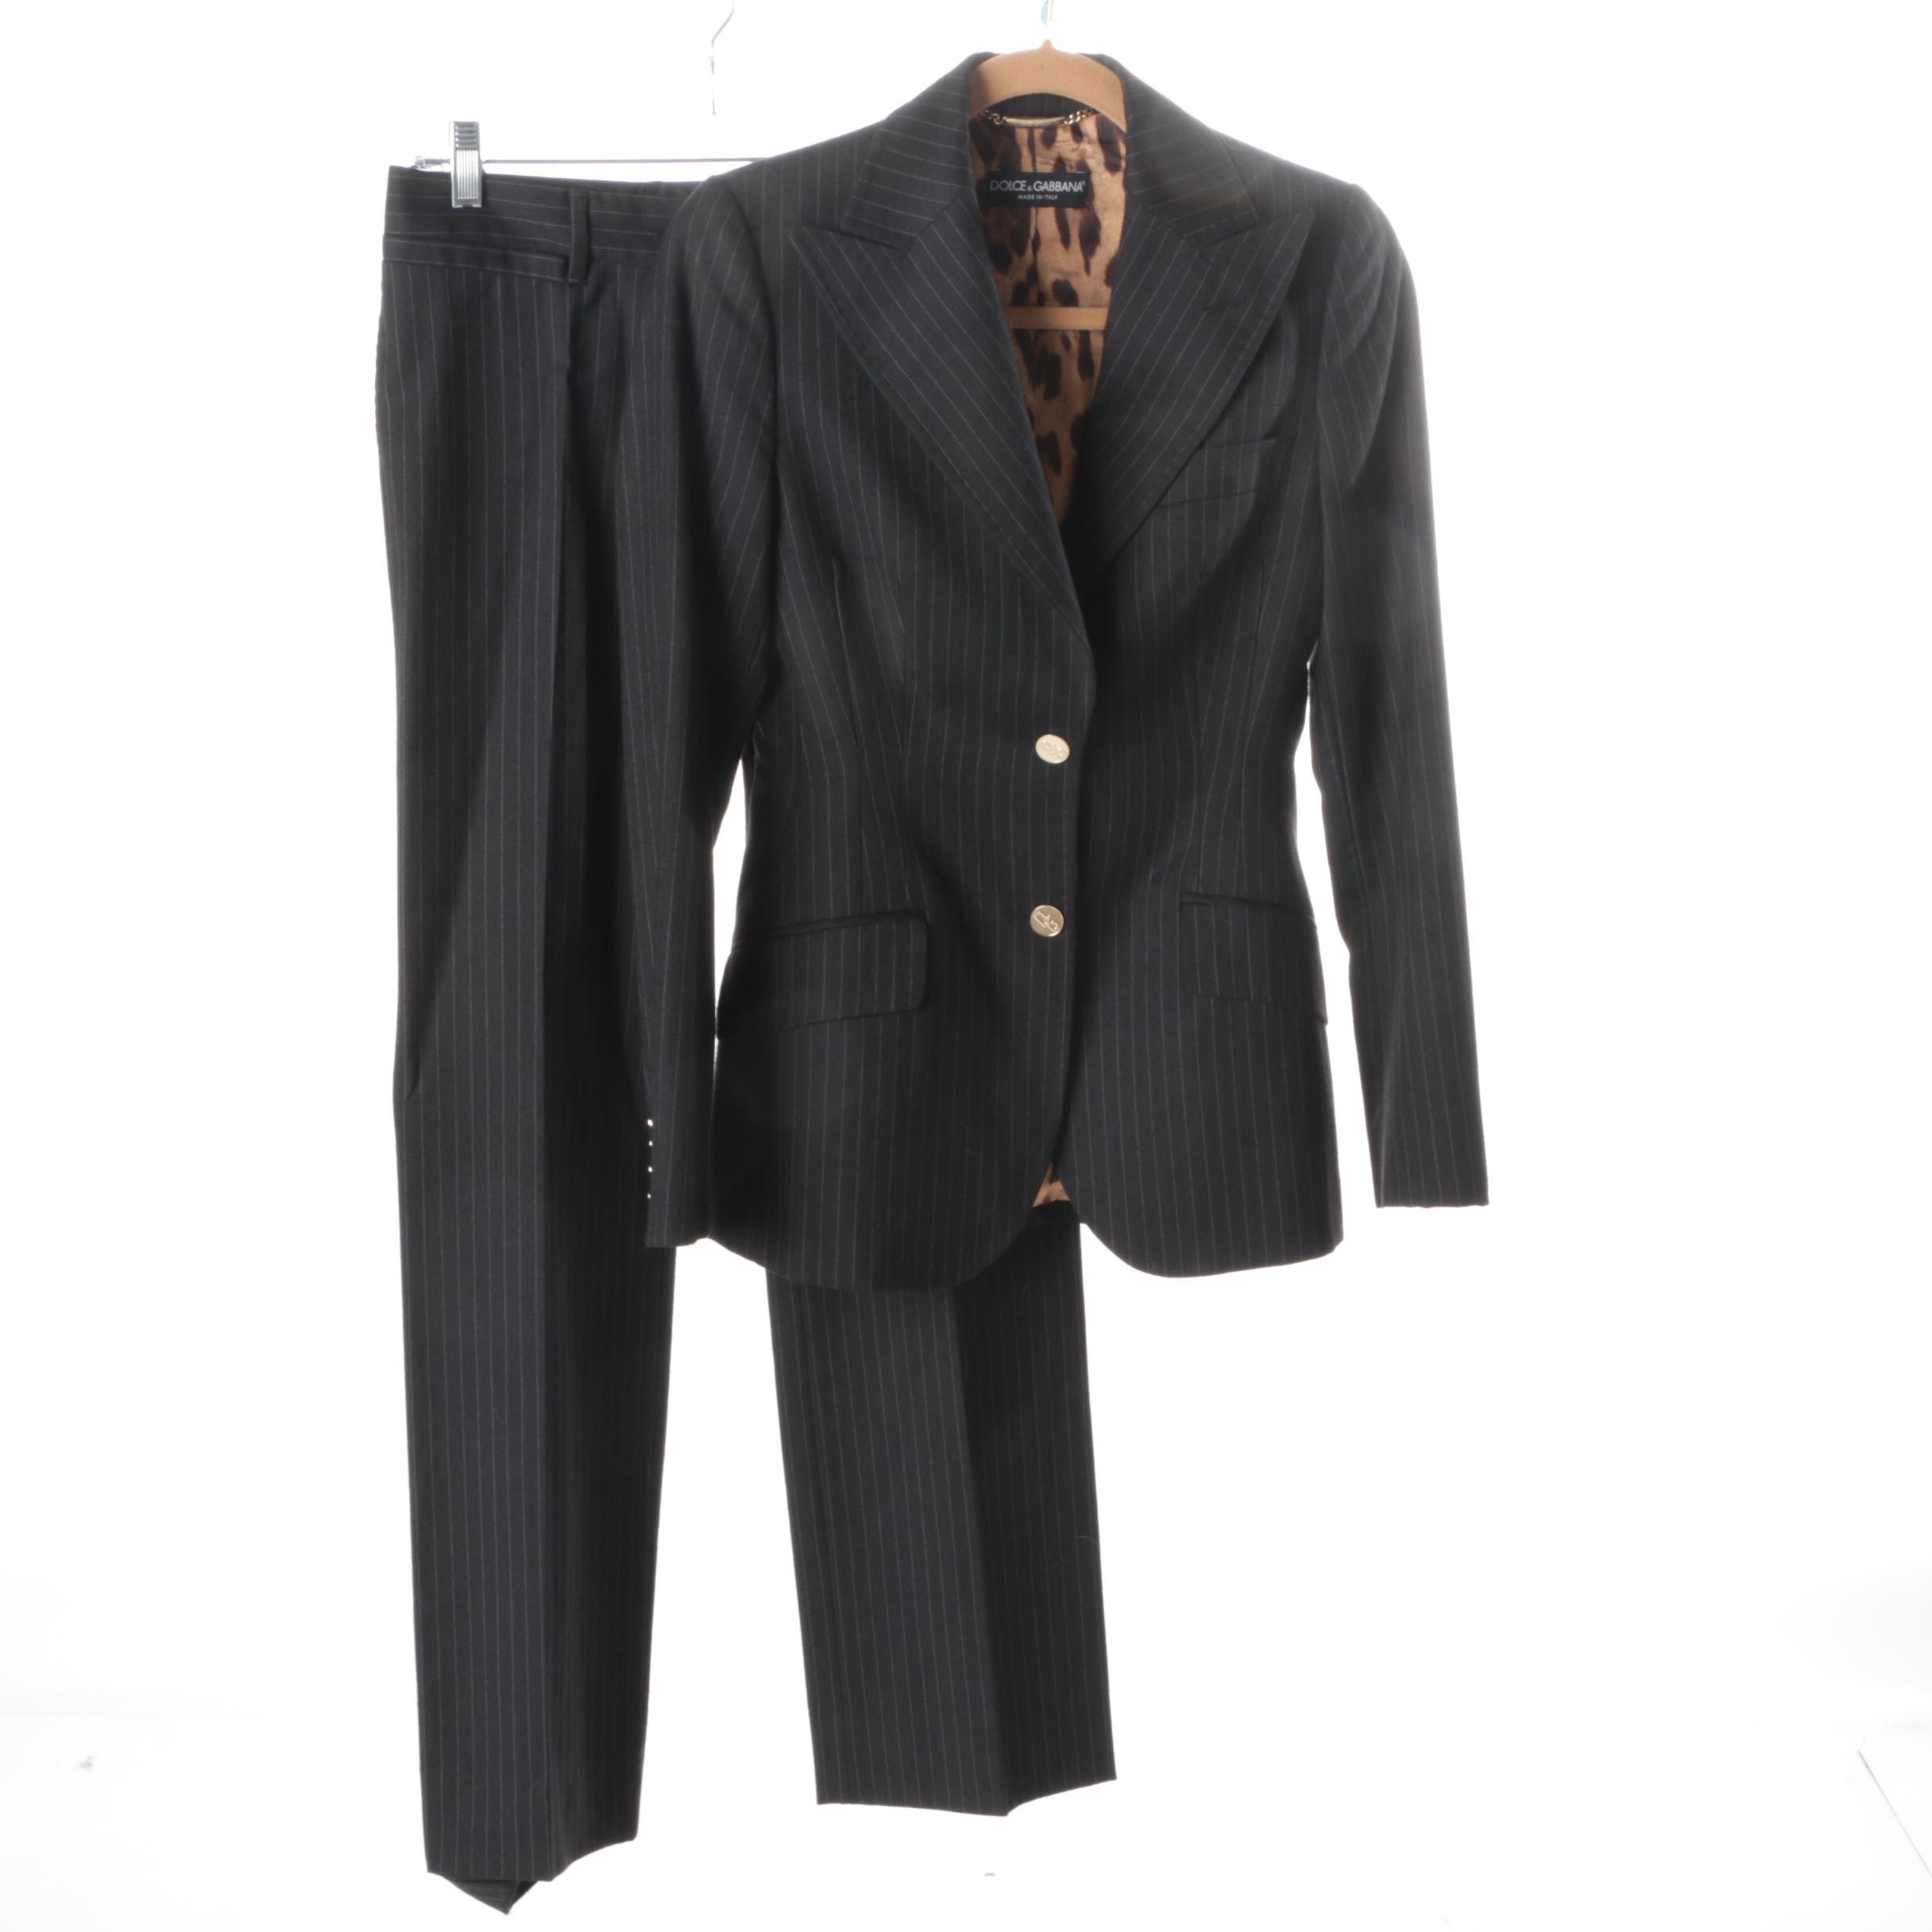 Women's pinstripe pant suits